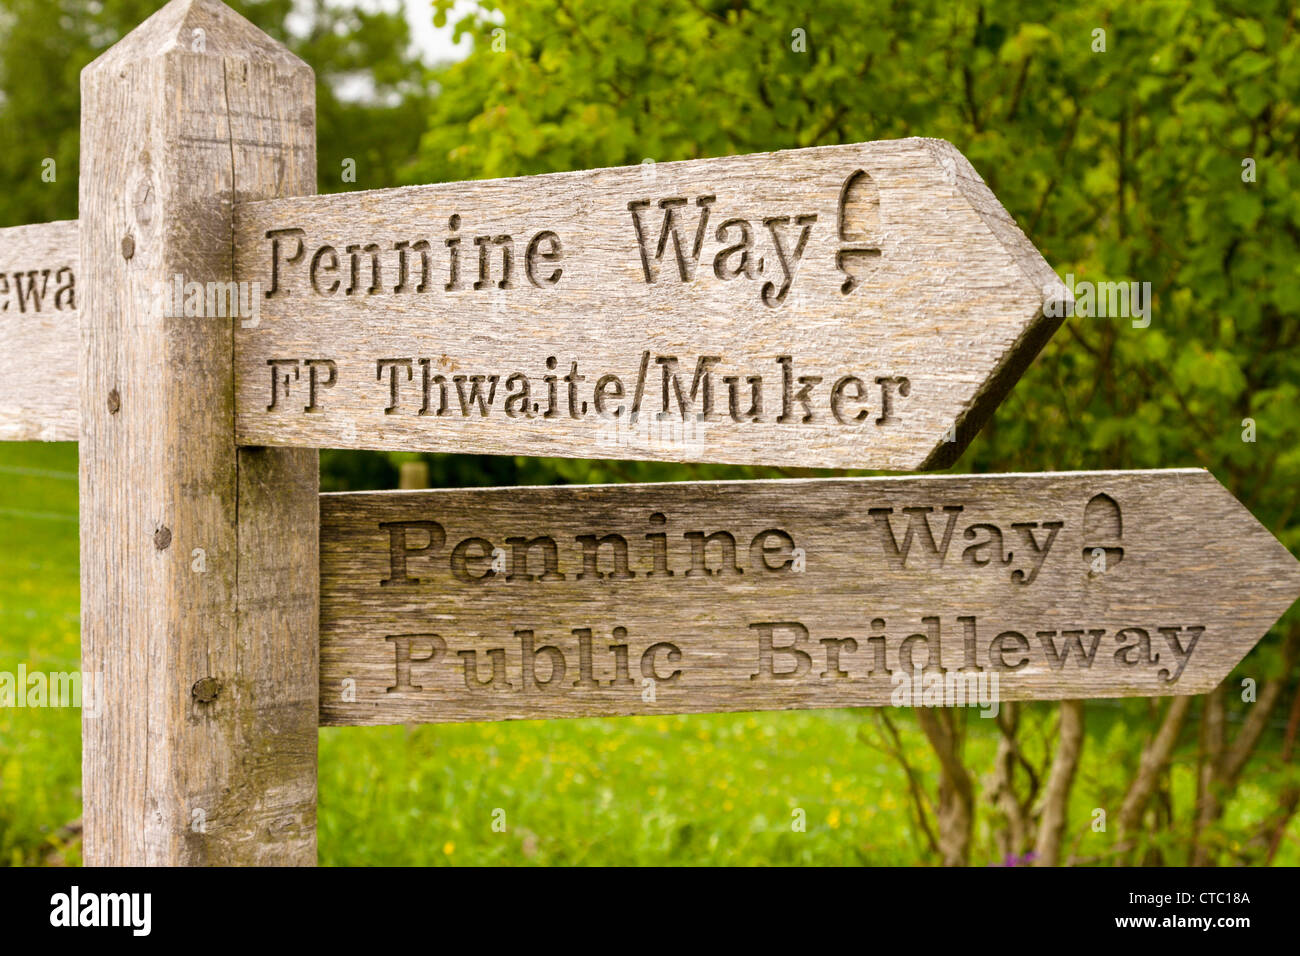 Pennine Way sign post, Yorkshire - Stock Image